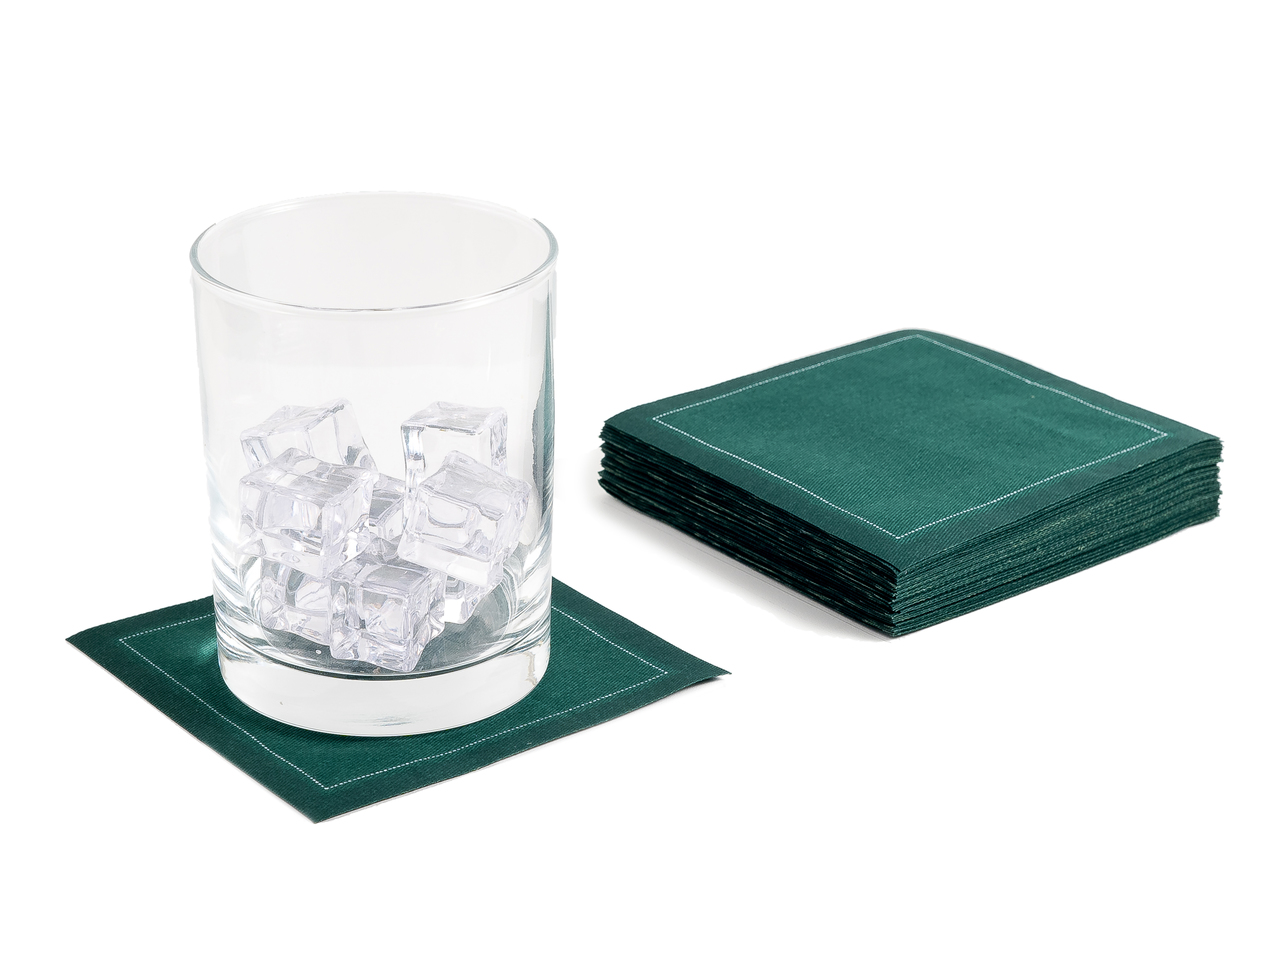 "British Racing Green Cotton Cocktail (200 GSM) - 4.5"" x 4.5"" - 1200 Units"